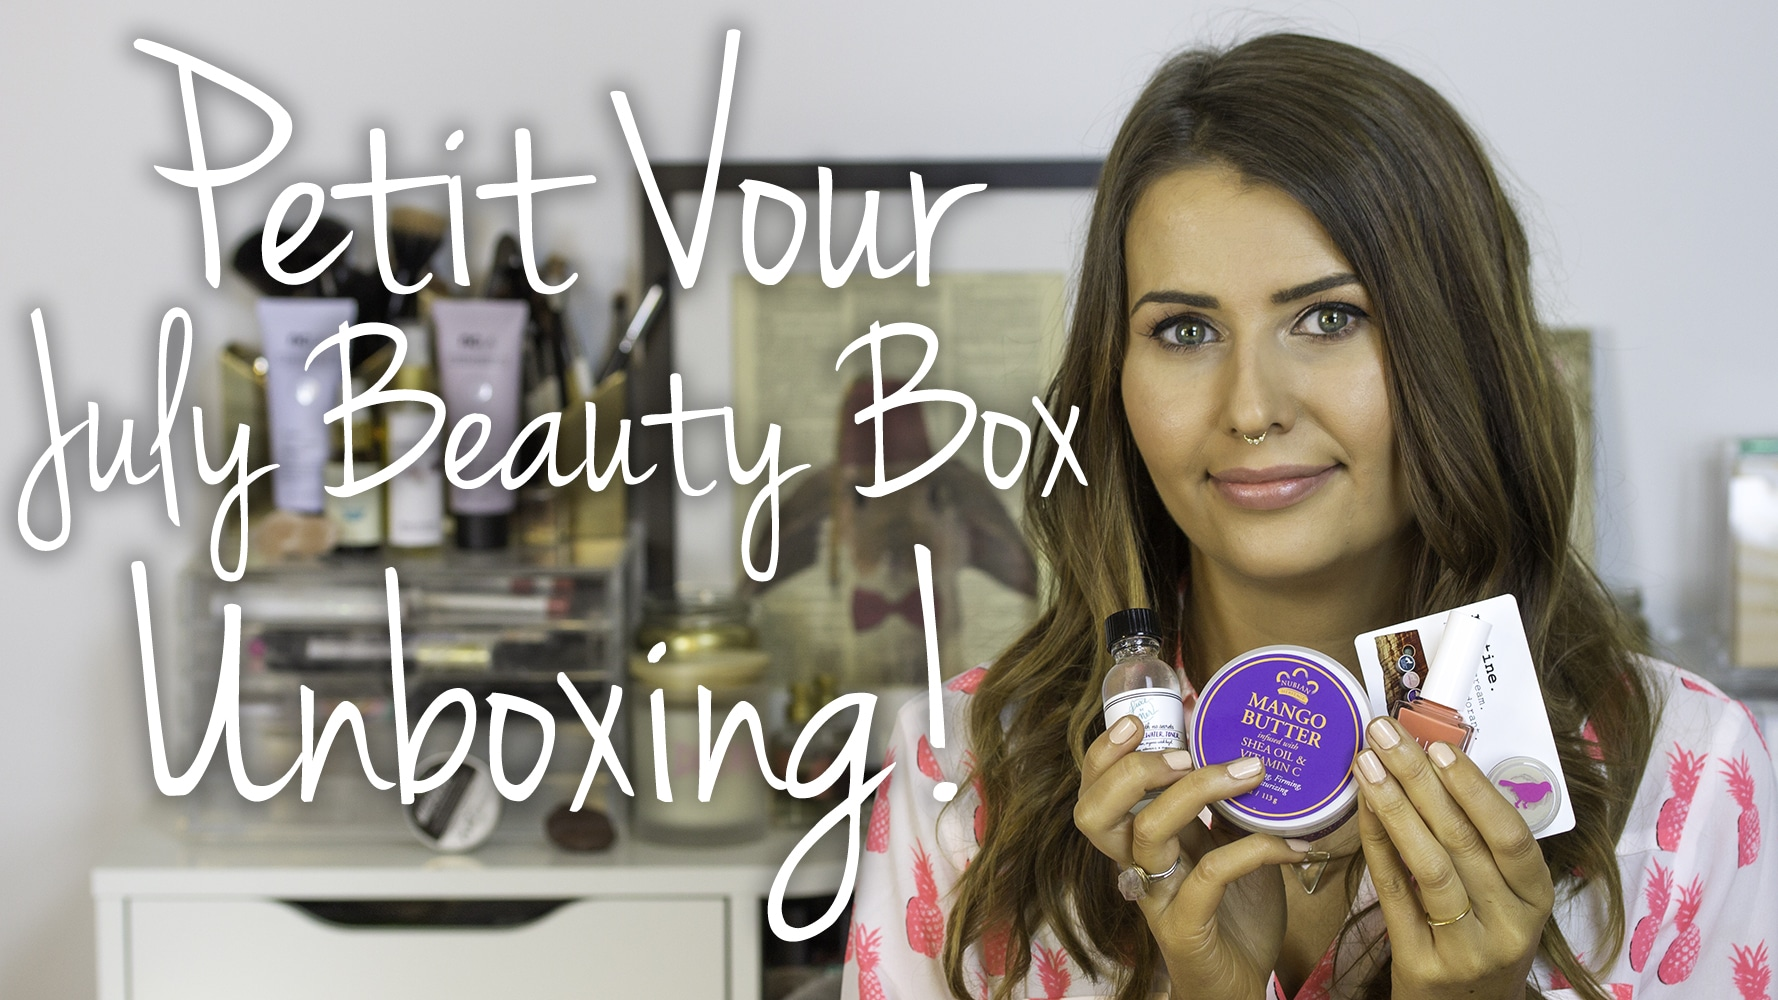 Petit Vour July 2015 Beauty Box Video